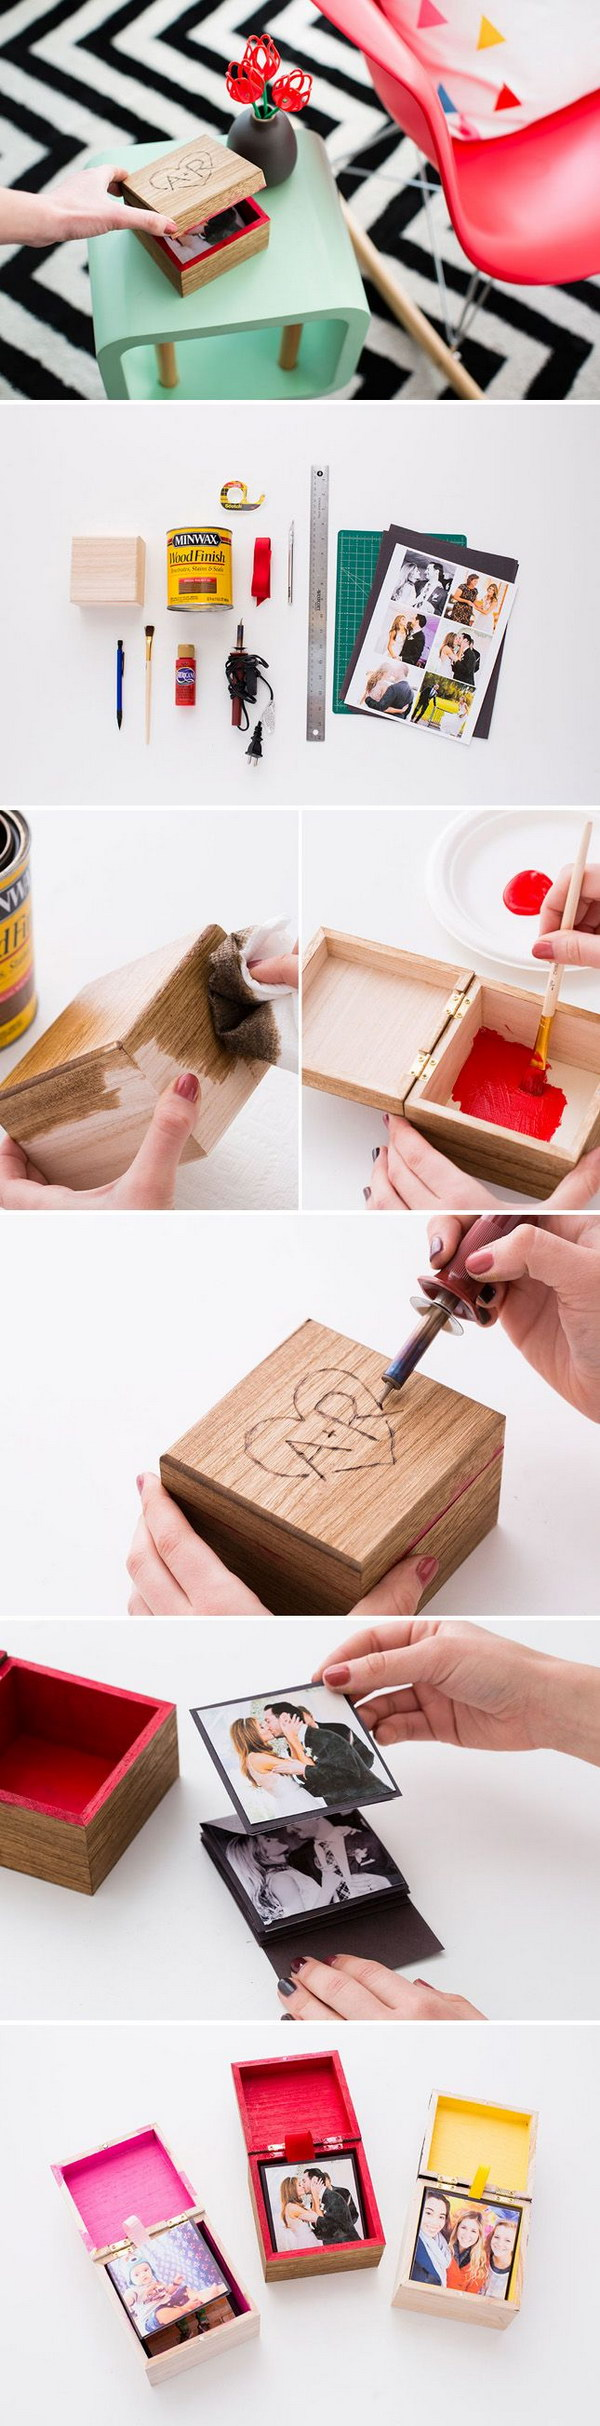 Populaire 25+ DIY Gifts for Him With Lots of Tutorials 2017 CI28